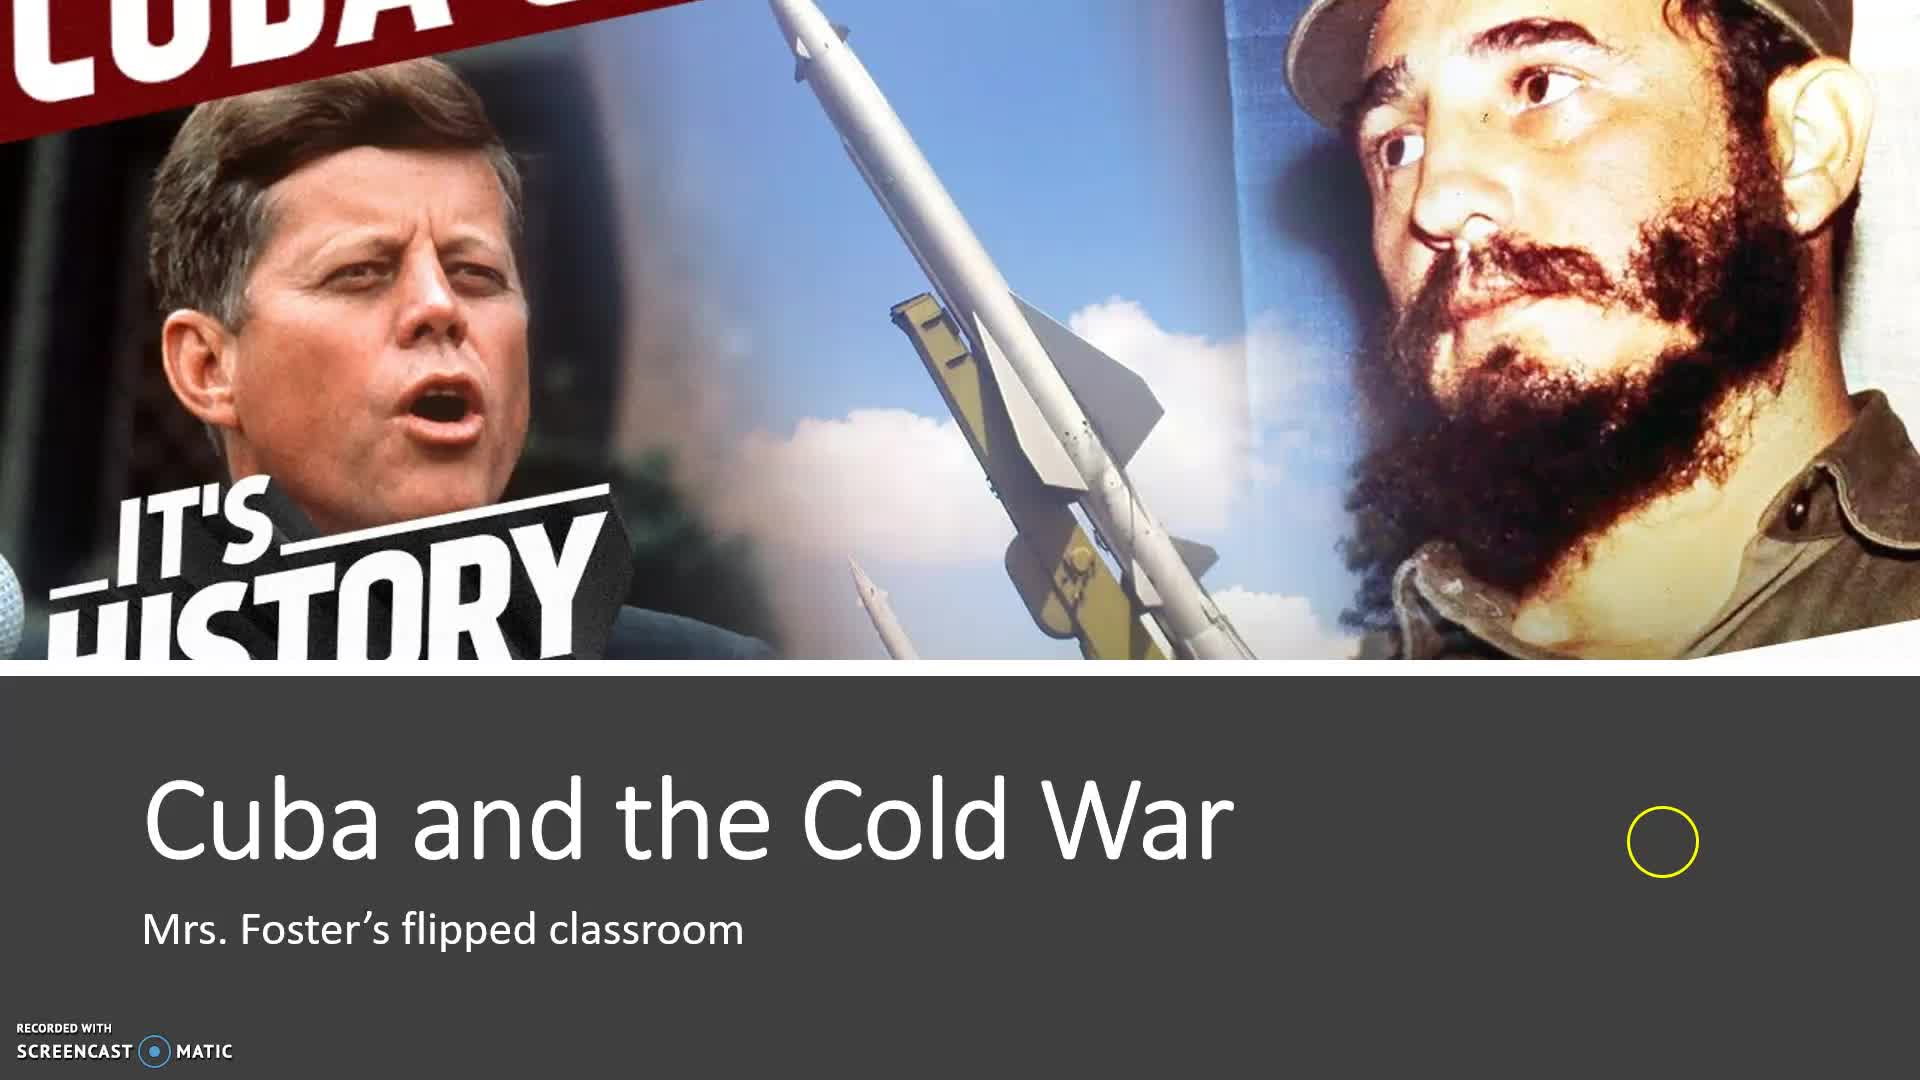 Cuba and the Cold War 2019